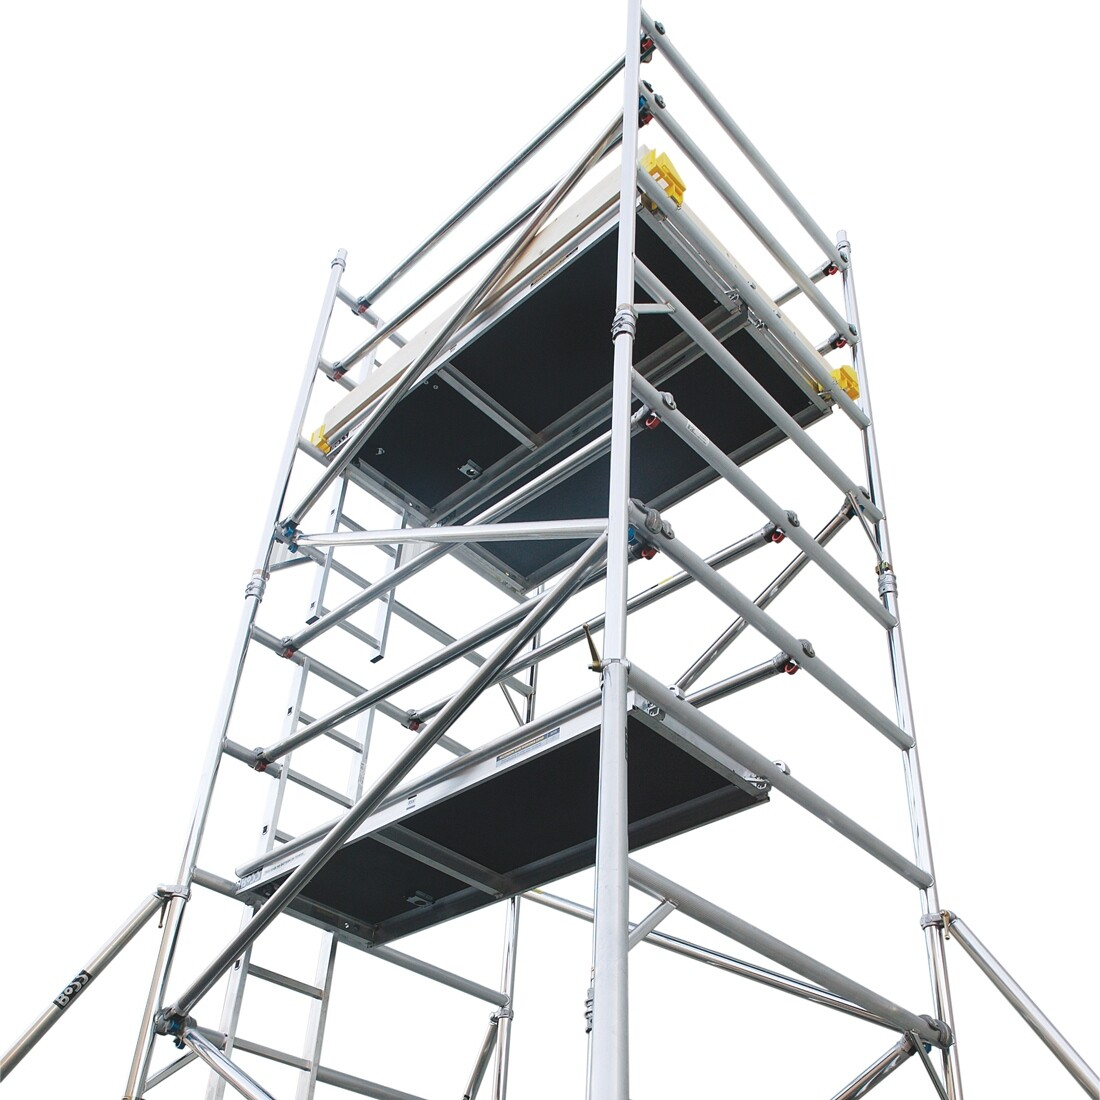 Mobile Tower Double Width - 1.4m wide x 1.8m long x 7.4m high